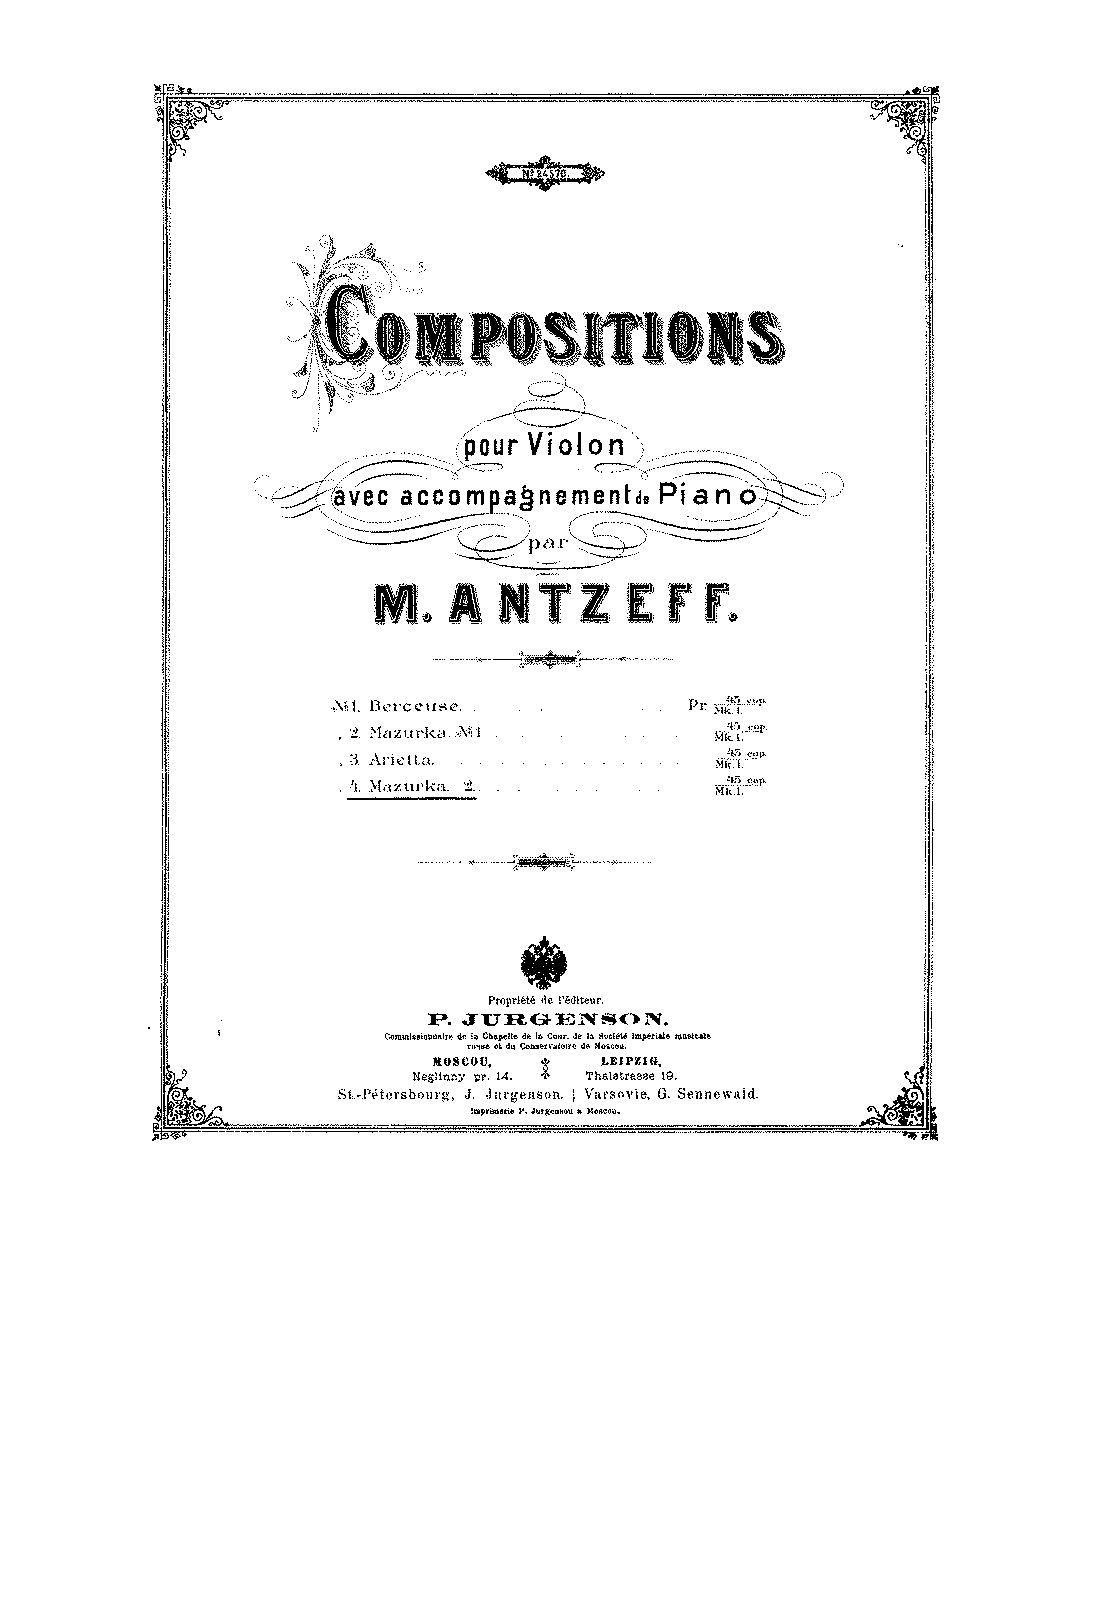 SIBLEY1802.10815.0997-39087004900884compositions 4.pdf